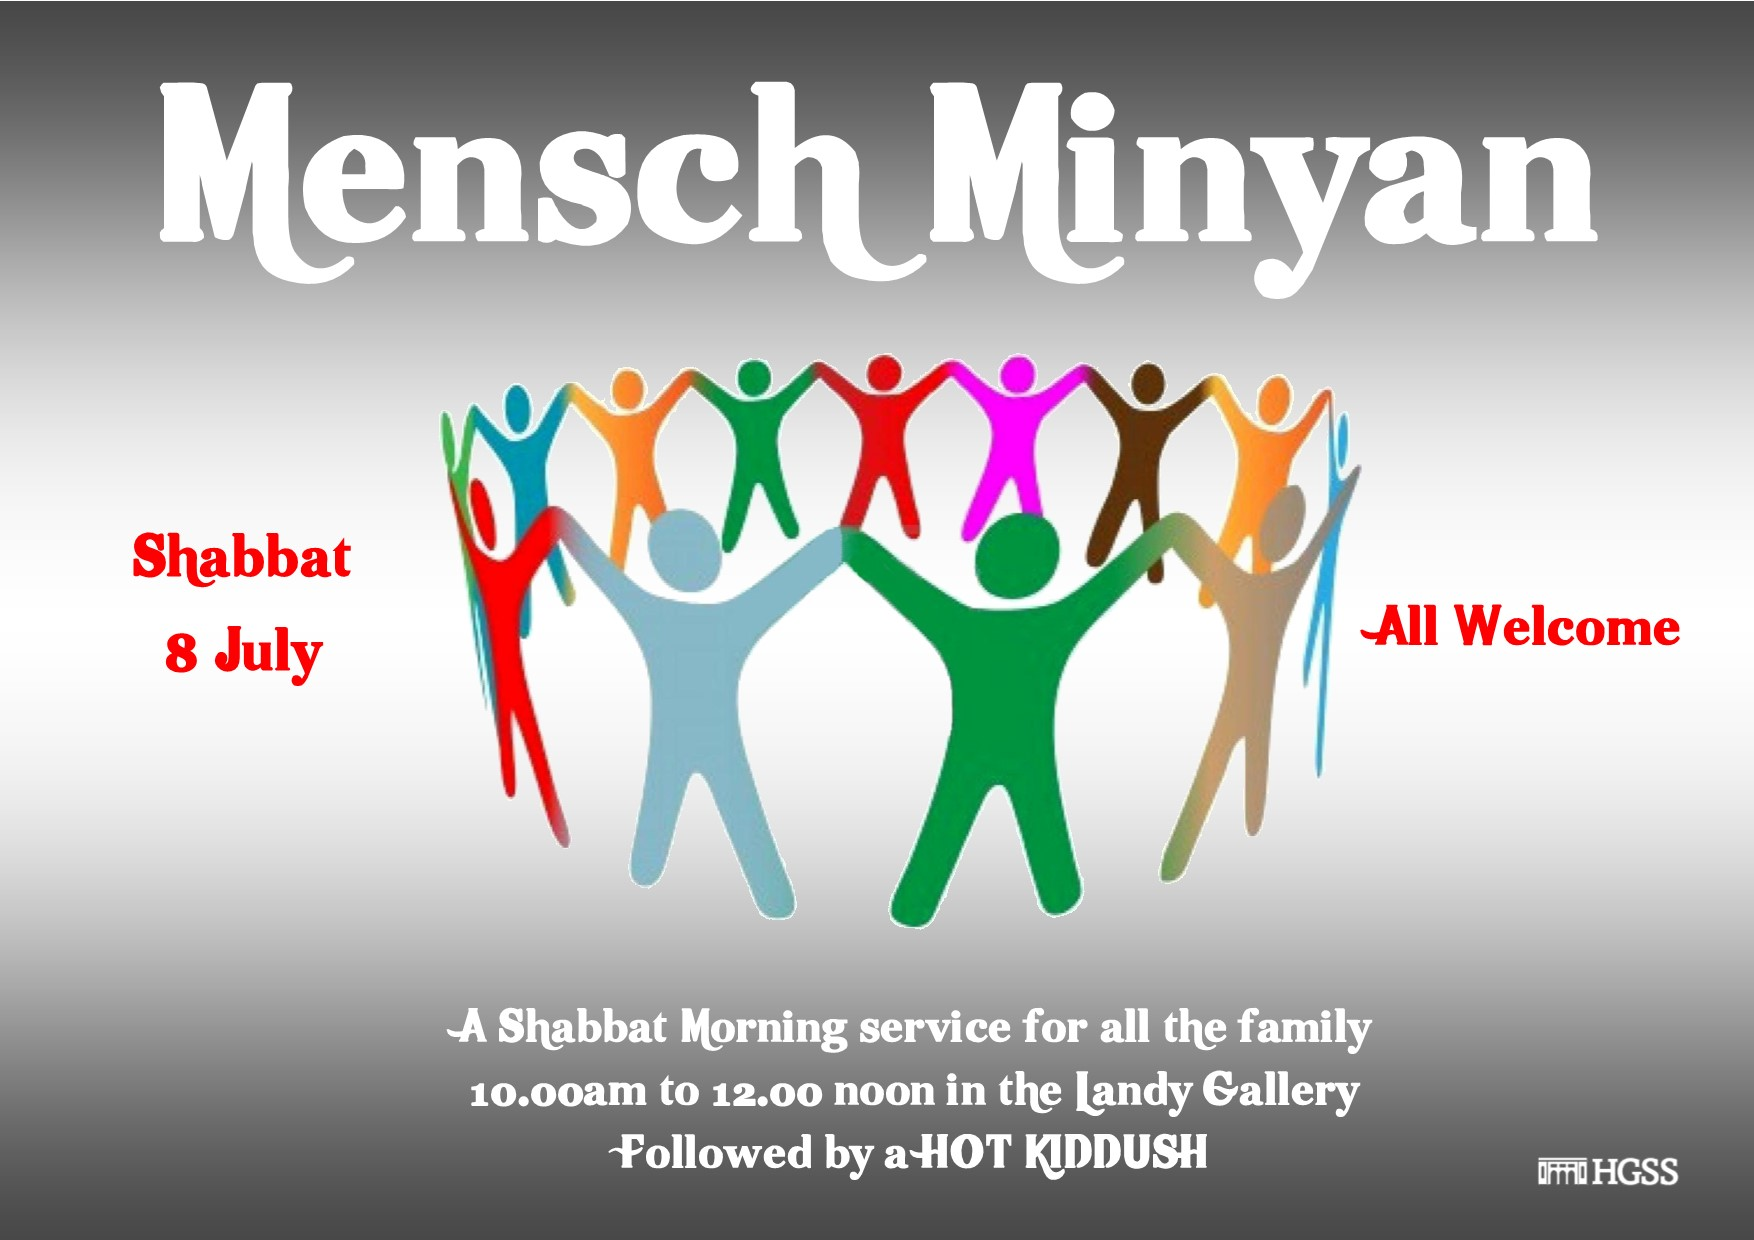 Mensch Minyan @ The Landy Gallery